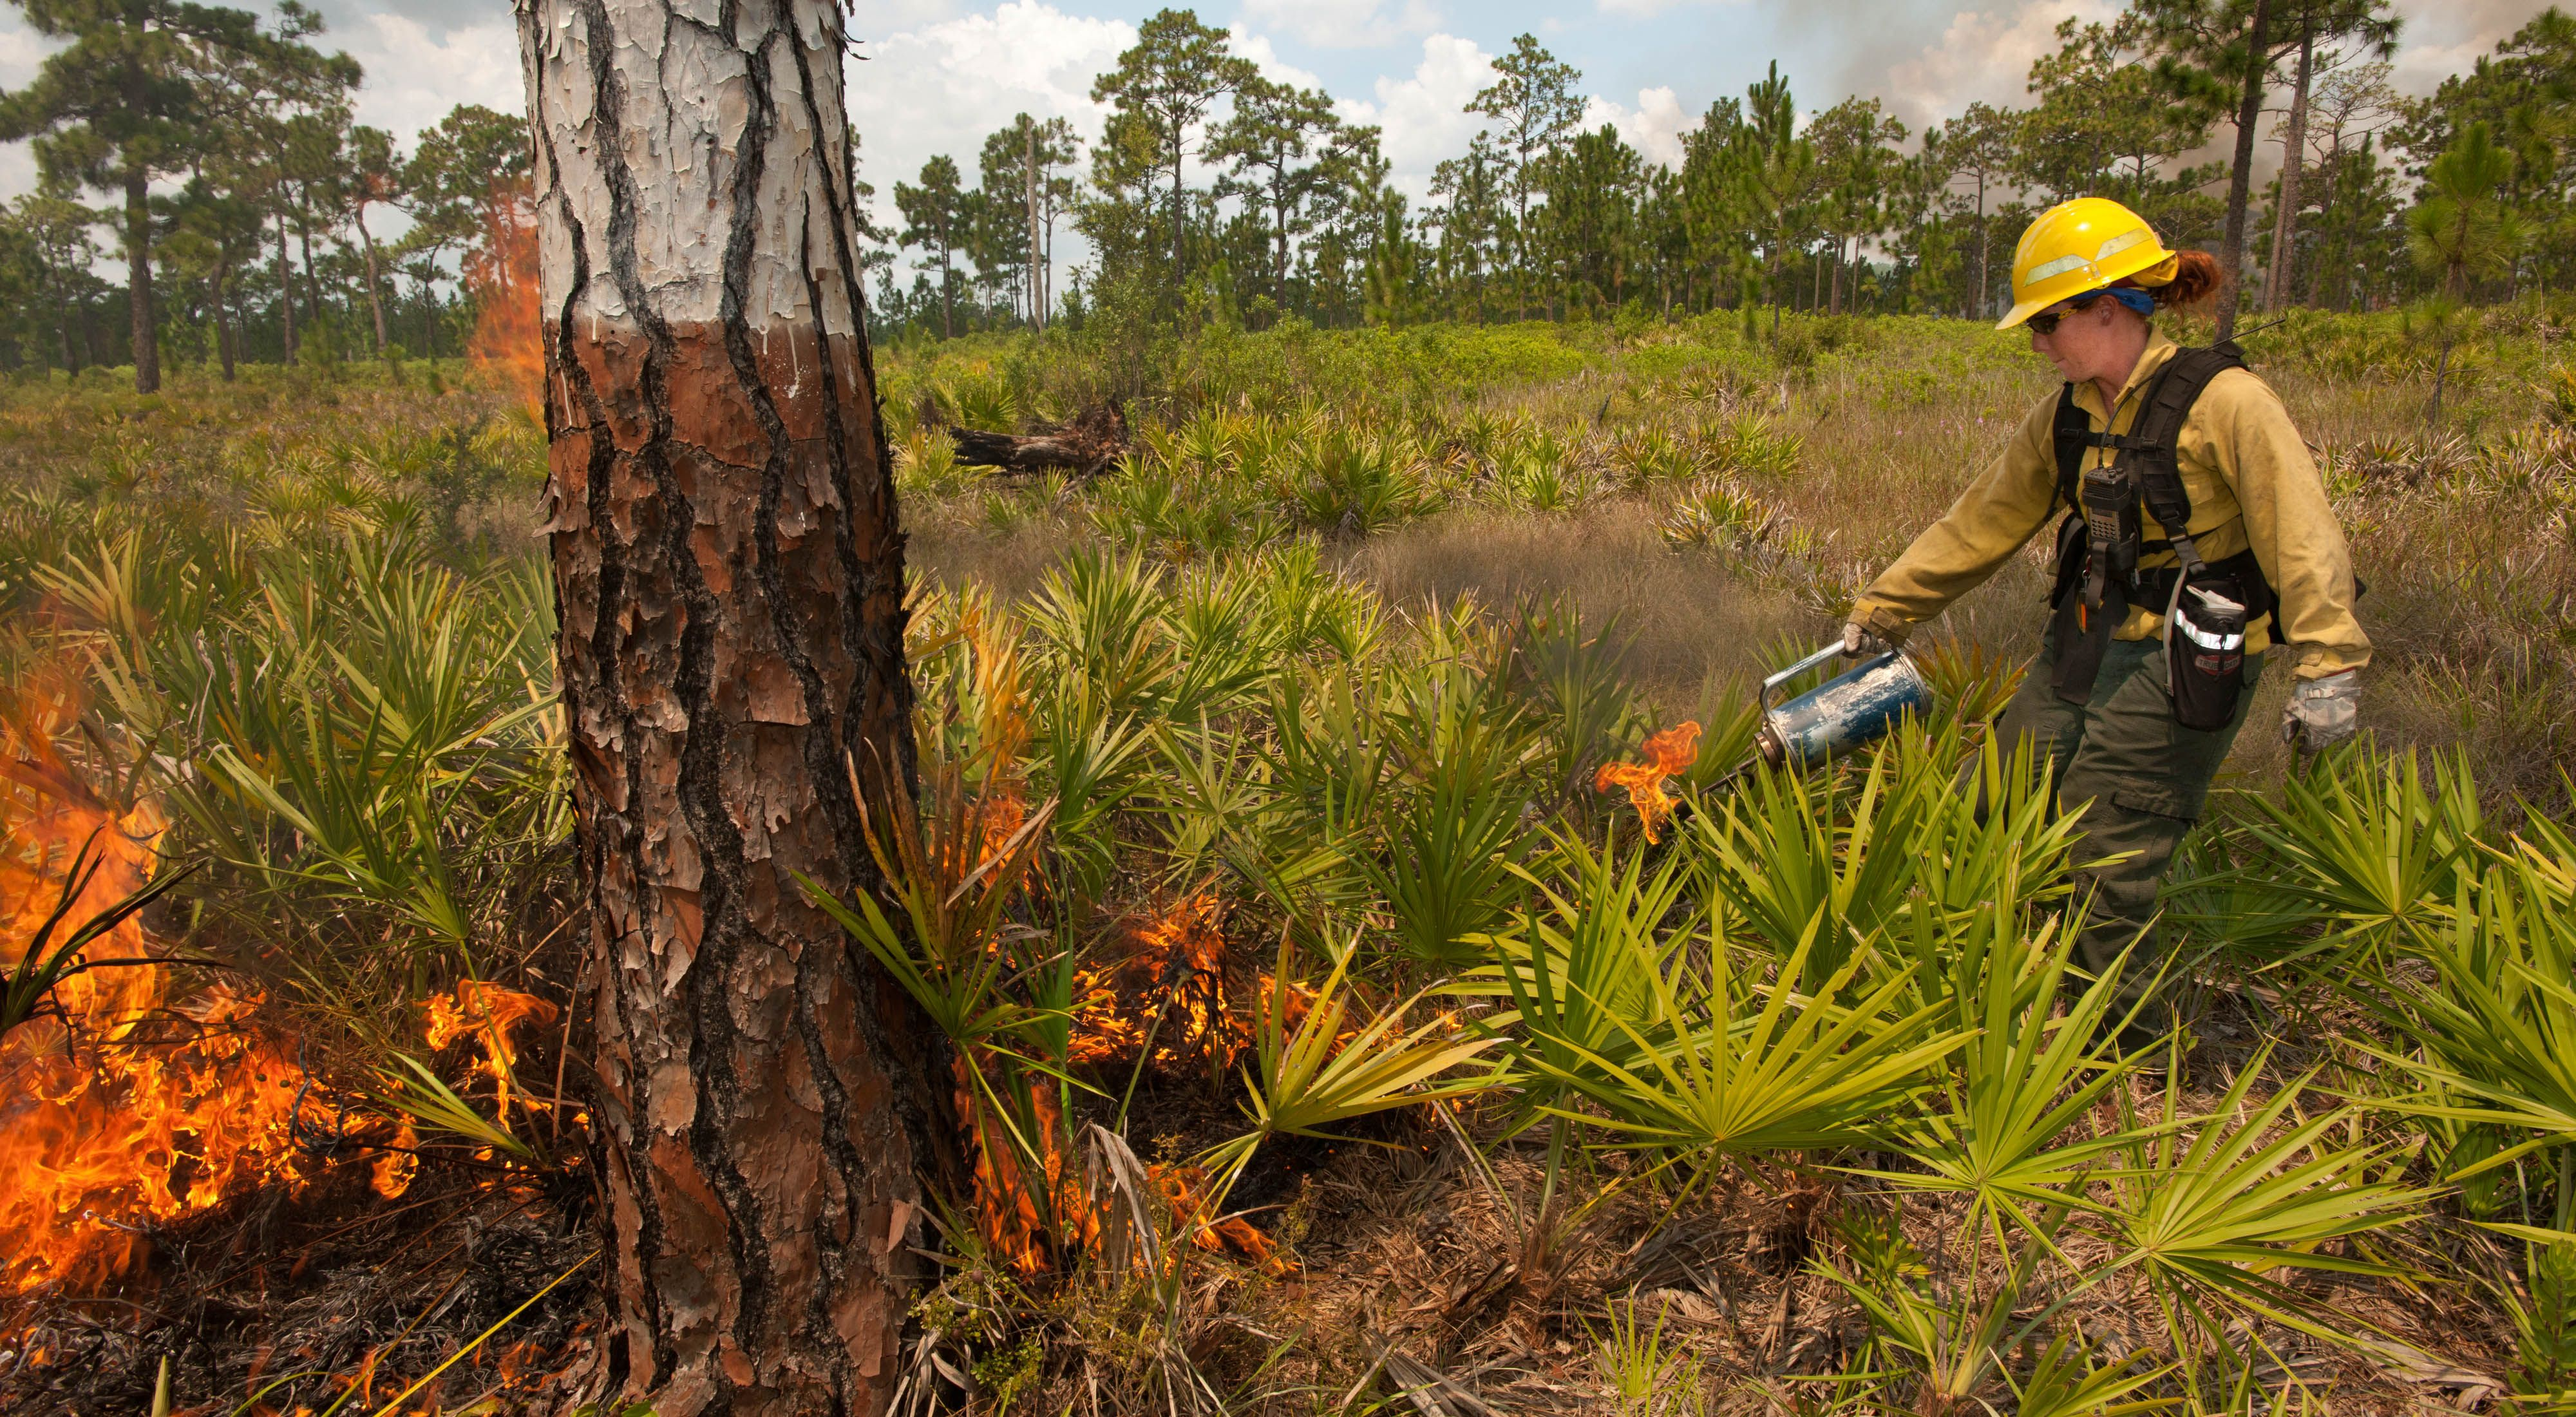 Florida Fire practitioner lights the prescribed fire with a drop torch.